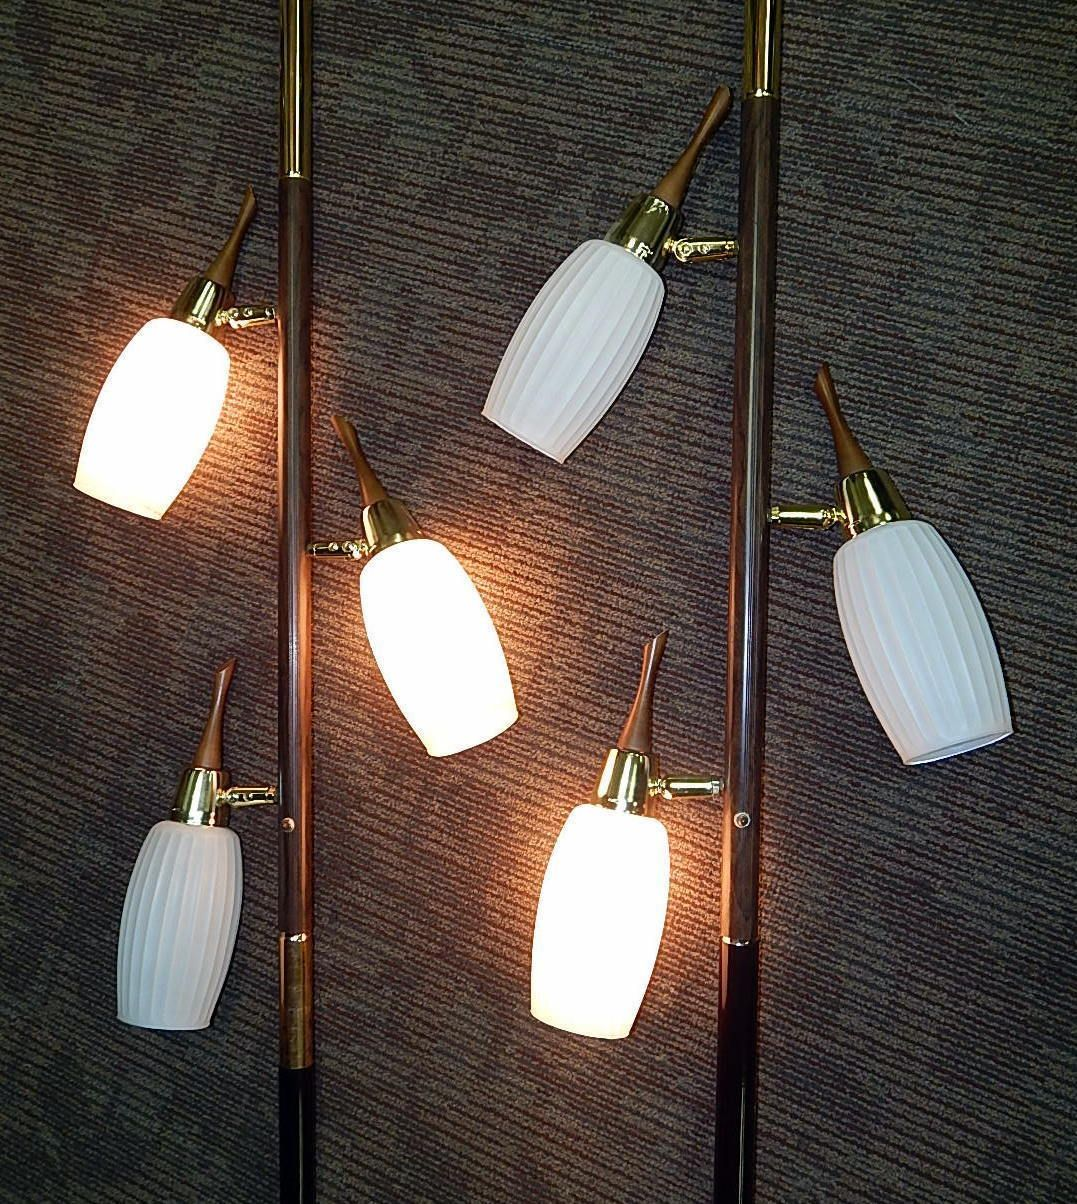 hight resolution of two mid century spring tension pole floor lamp light retro mcm modern ebay electrical wiring